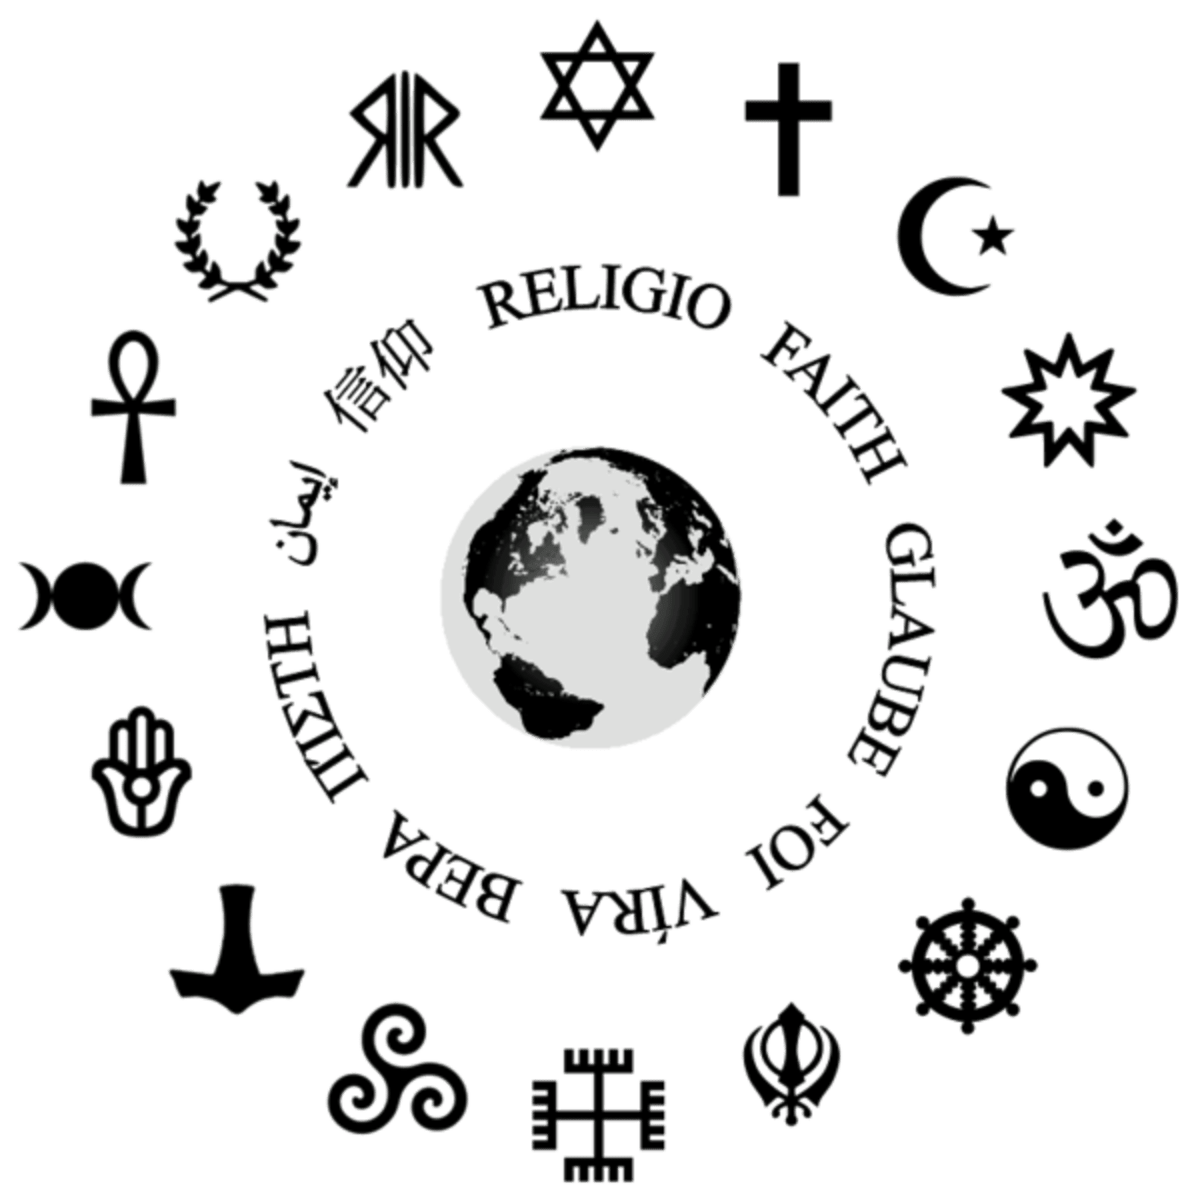 Durkheim and Geertz approaches to religion in society